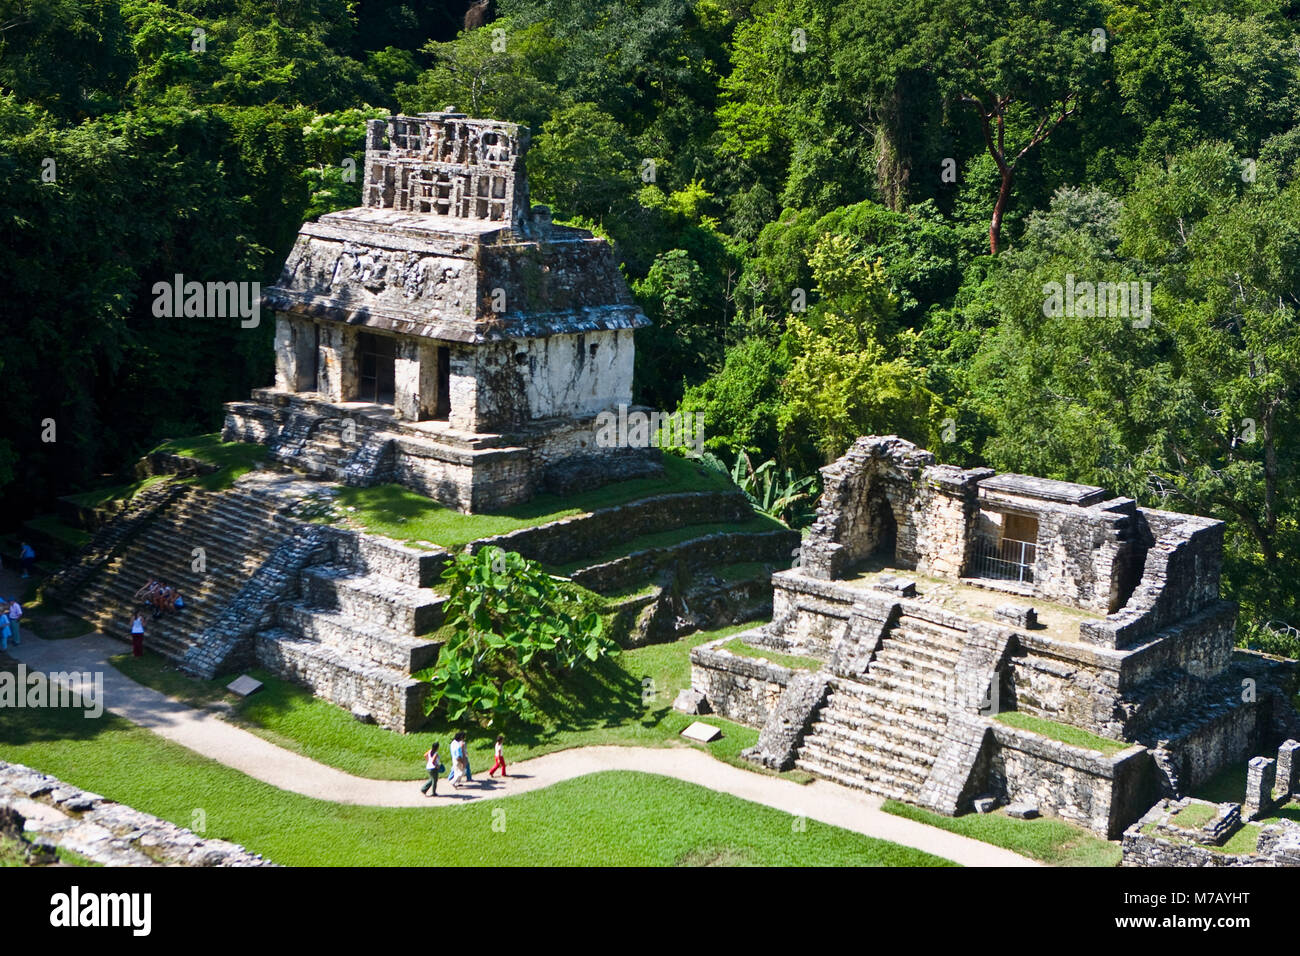 Templo Del Sol High Resolution Stock Photography and Images - Alamy